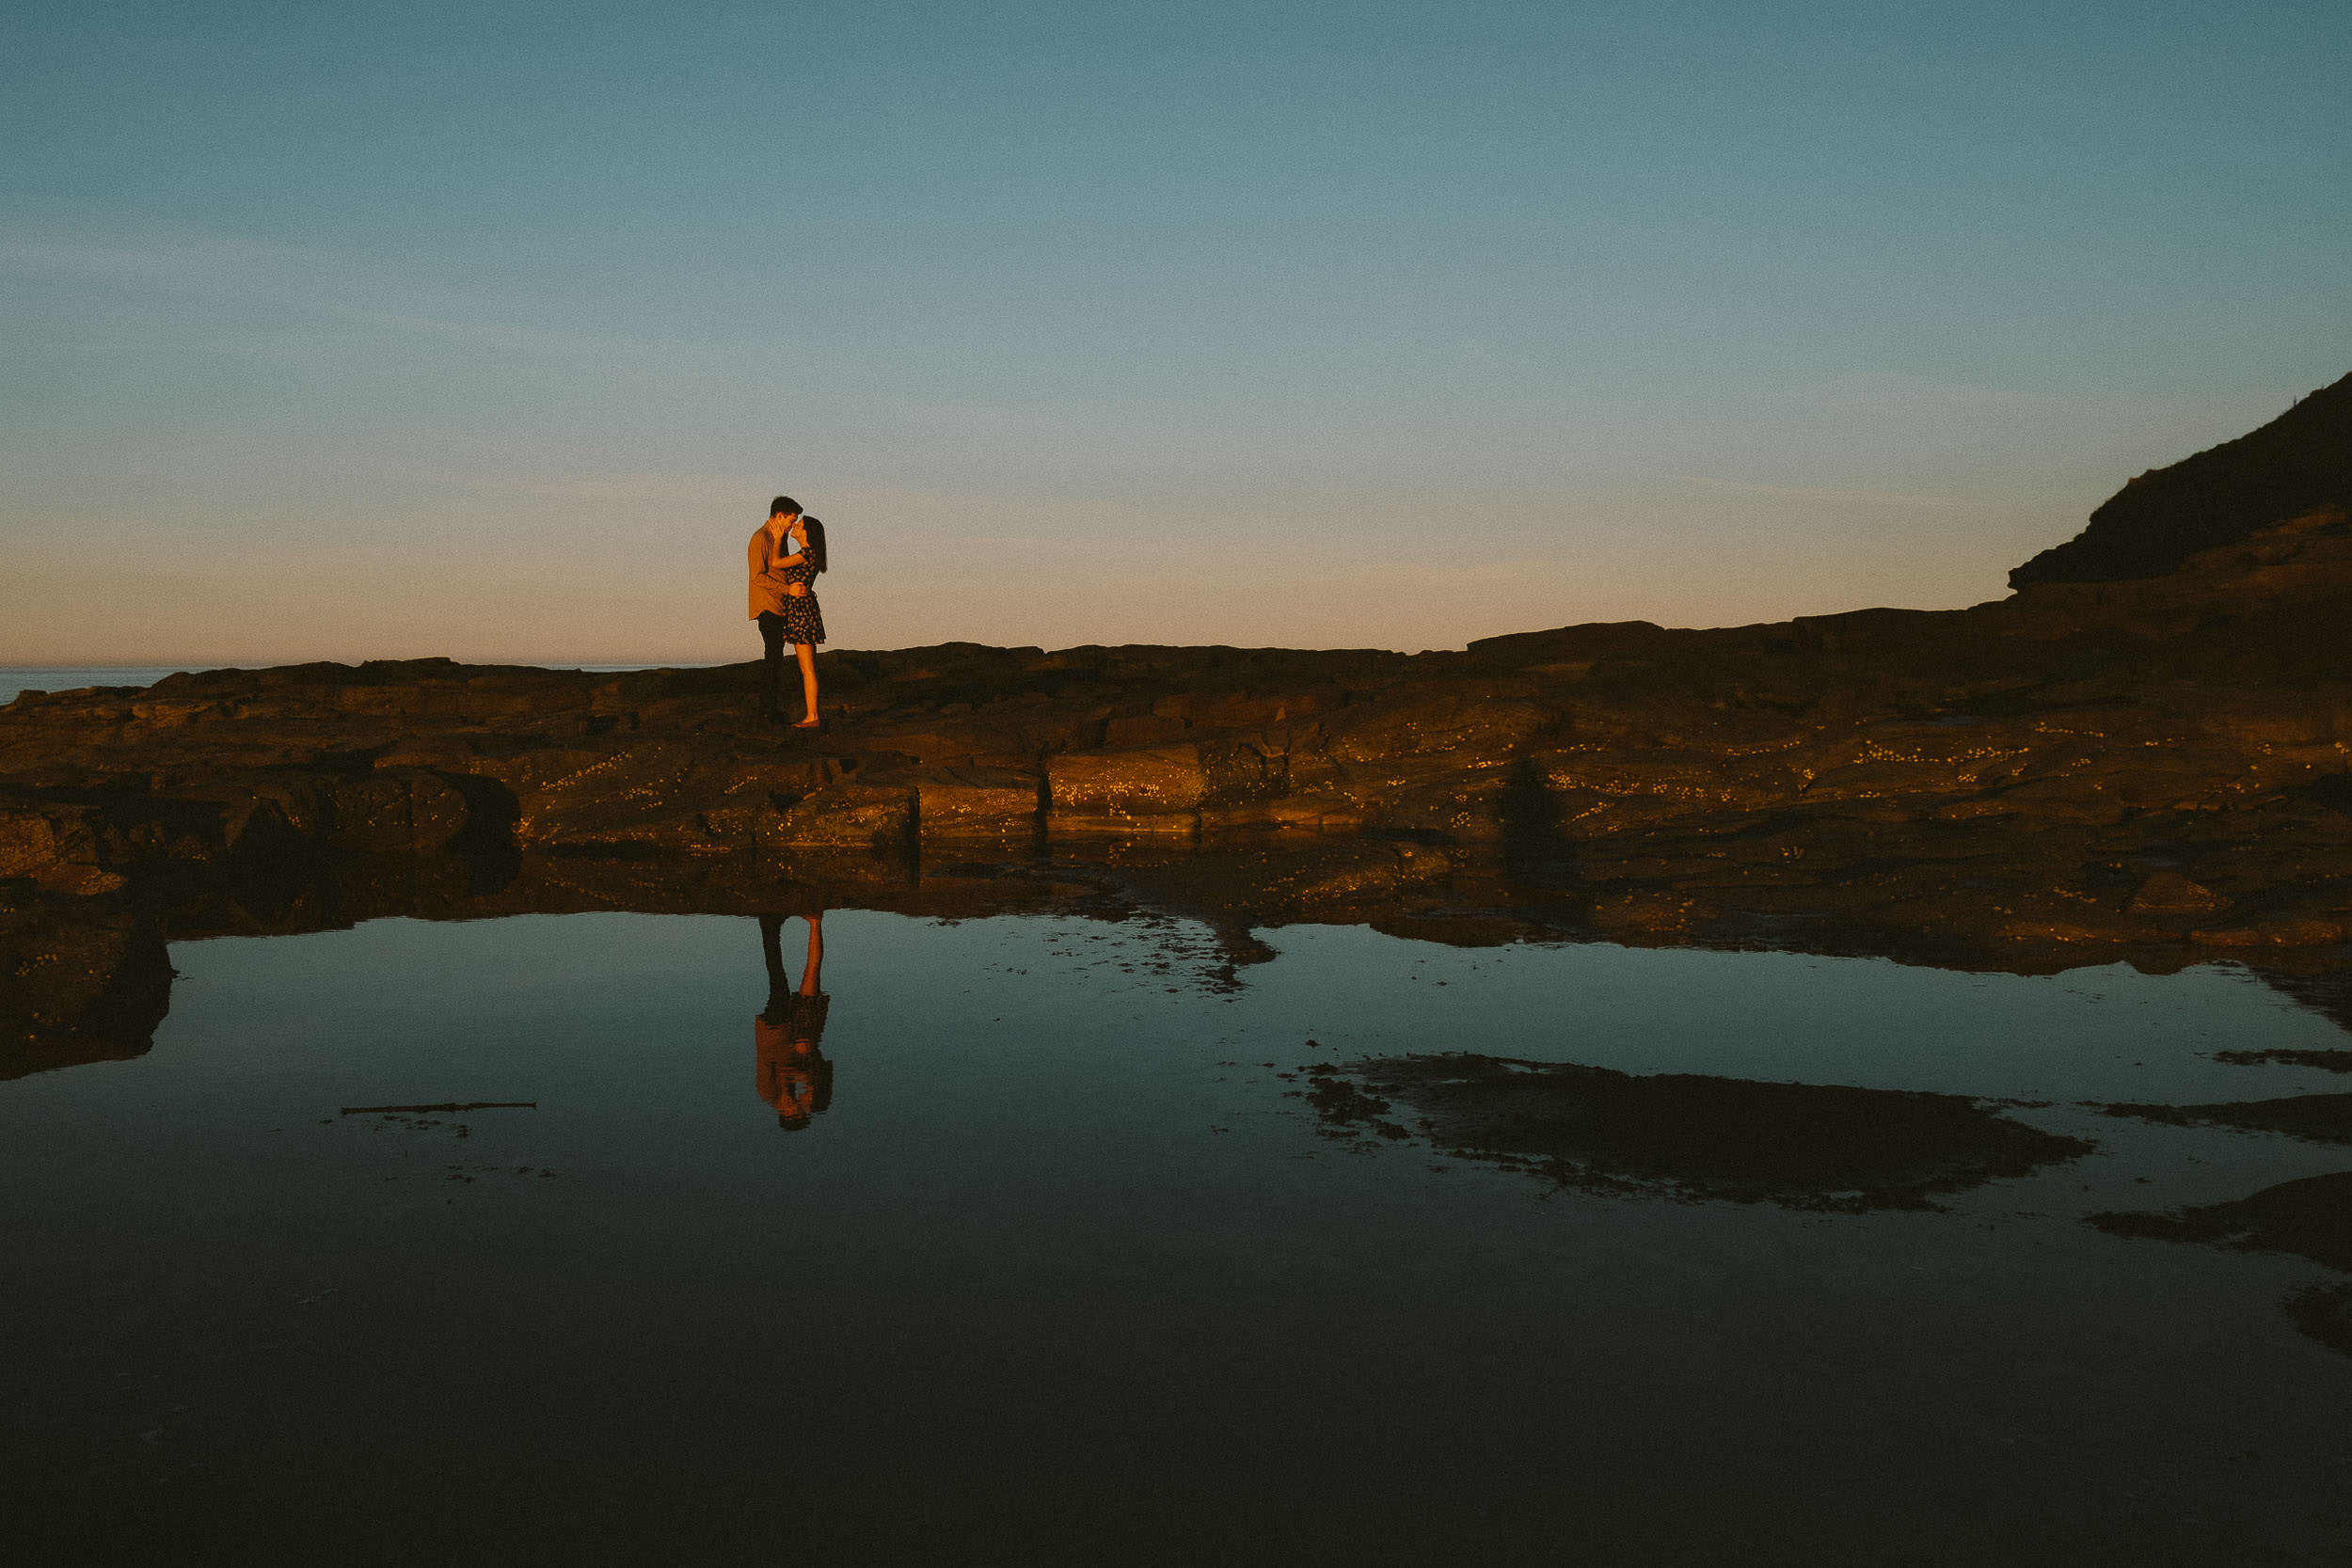 Serene photo of couple cuddling on rocks with reflection in water at sunset